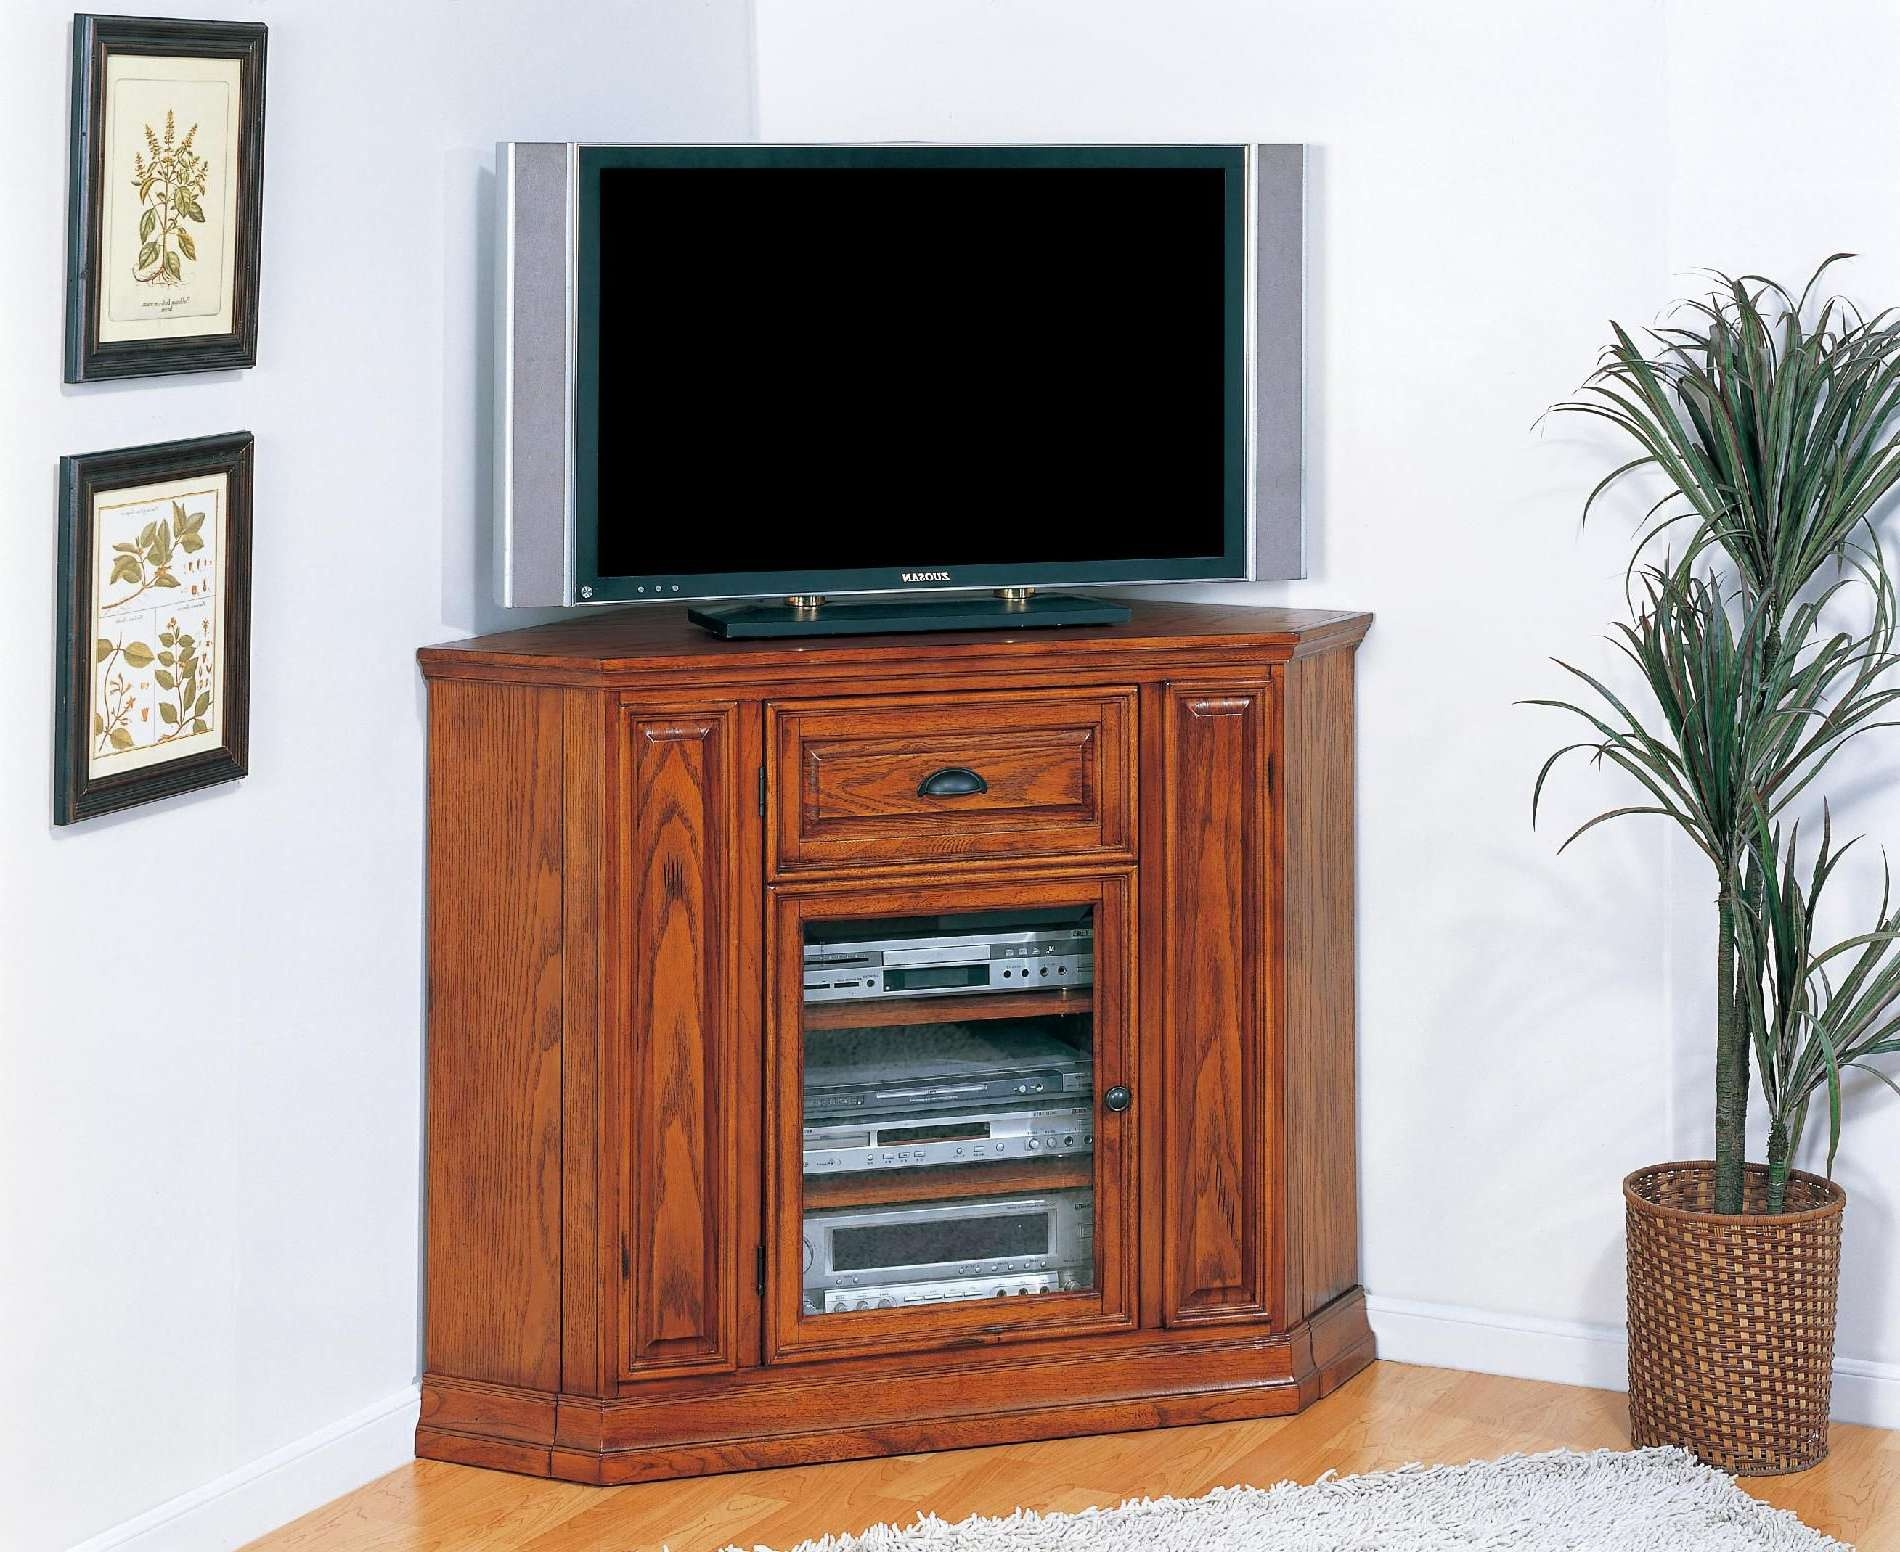 Tv Stand : Tall Narrow Tv Stands For Flat Screens And Standstall Regarding Corner Tv Stands With Drawers (View 14 of 15)